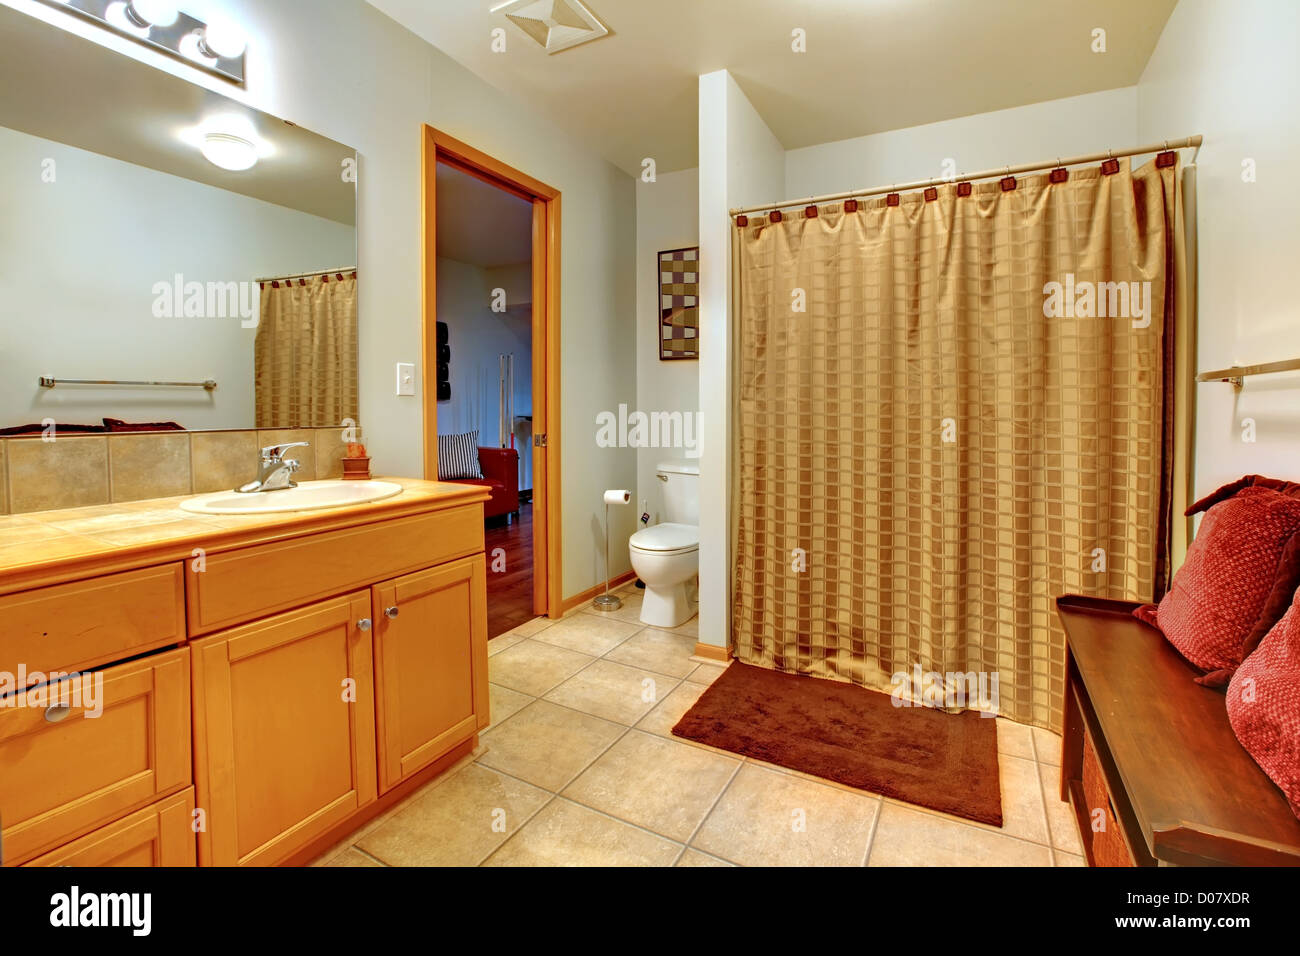 Large bathroom interior with bench with red pillows and shower Stock ...